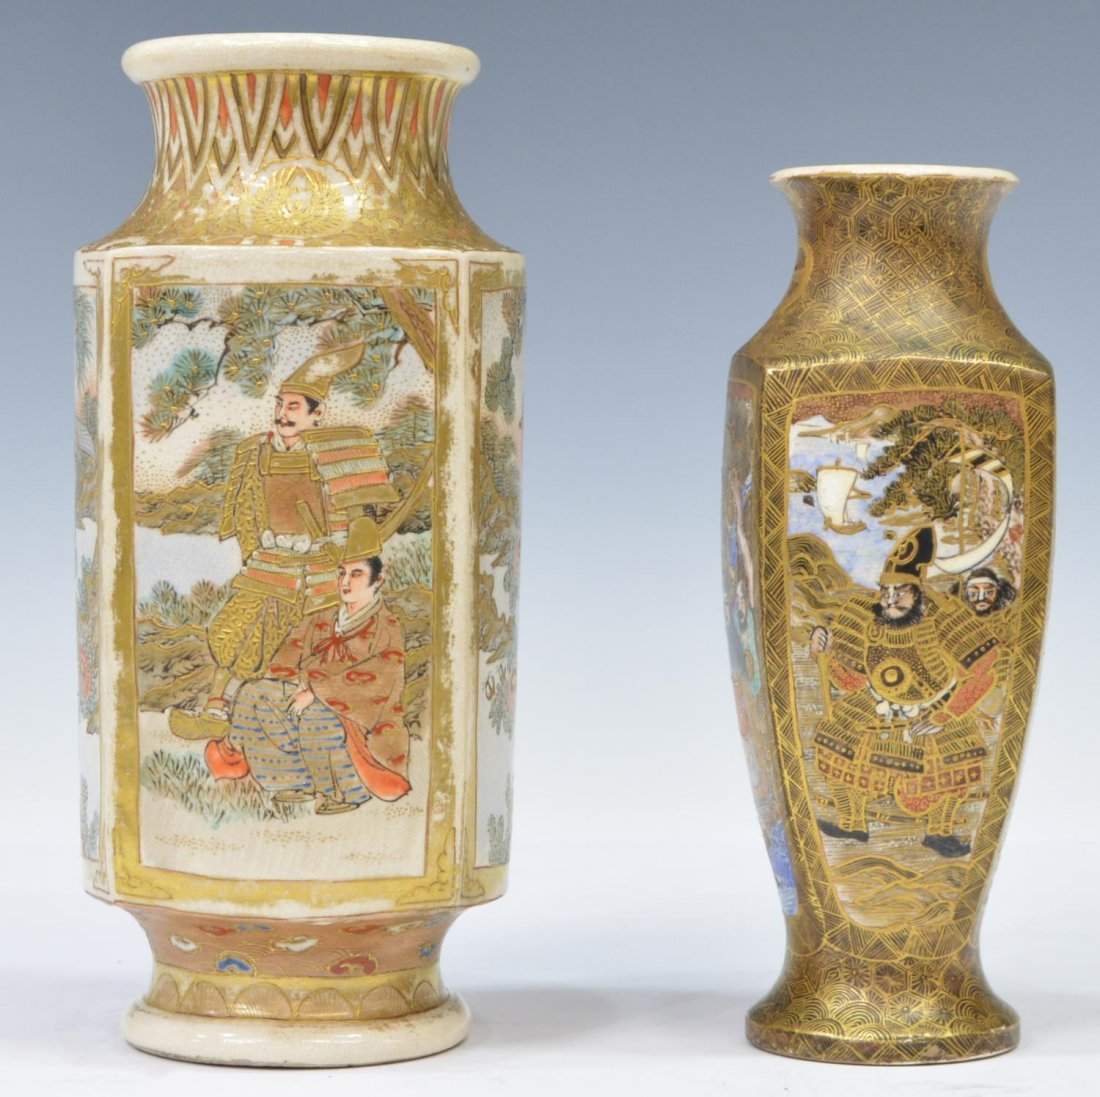 (2) ANTIQUE JAPANESE SATSUMA PARCEL GILT VASES